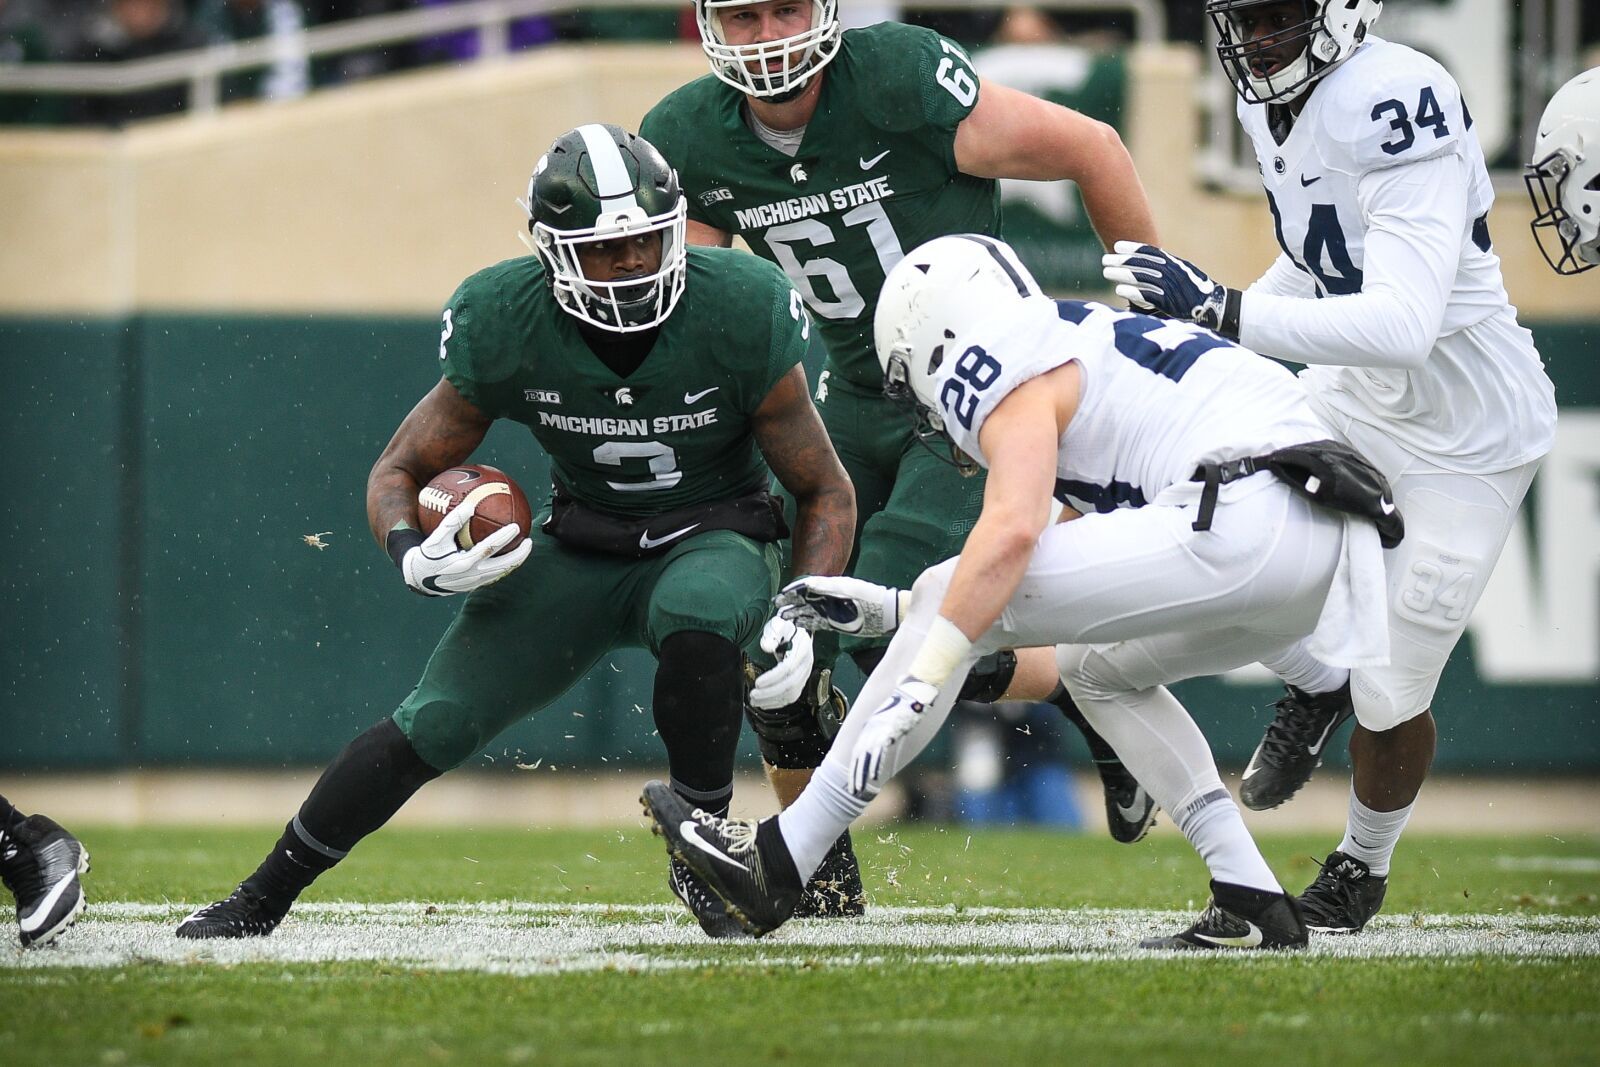 Penn State Vs Michigan State Preview Odds Prediction Tv Channel